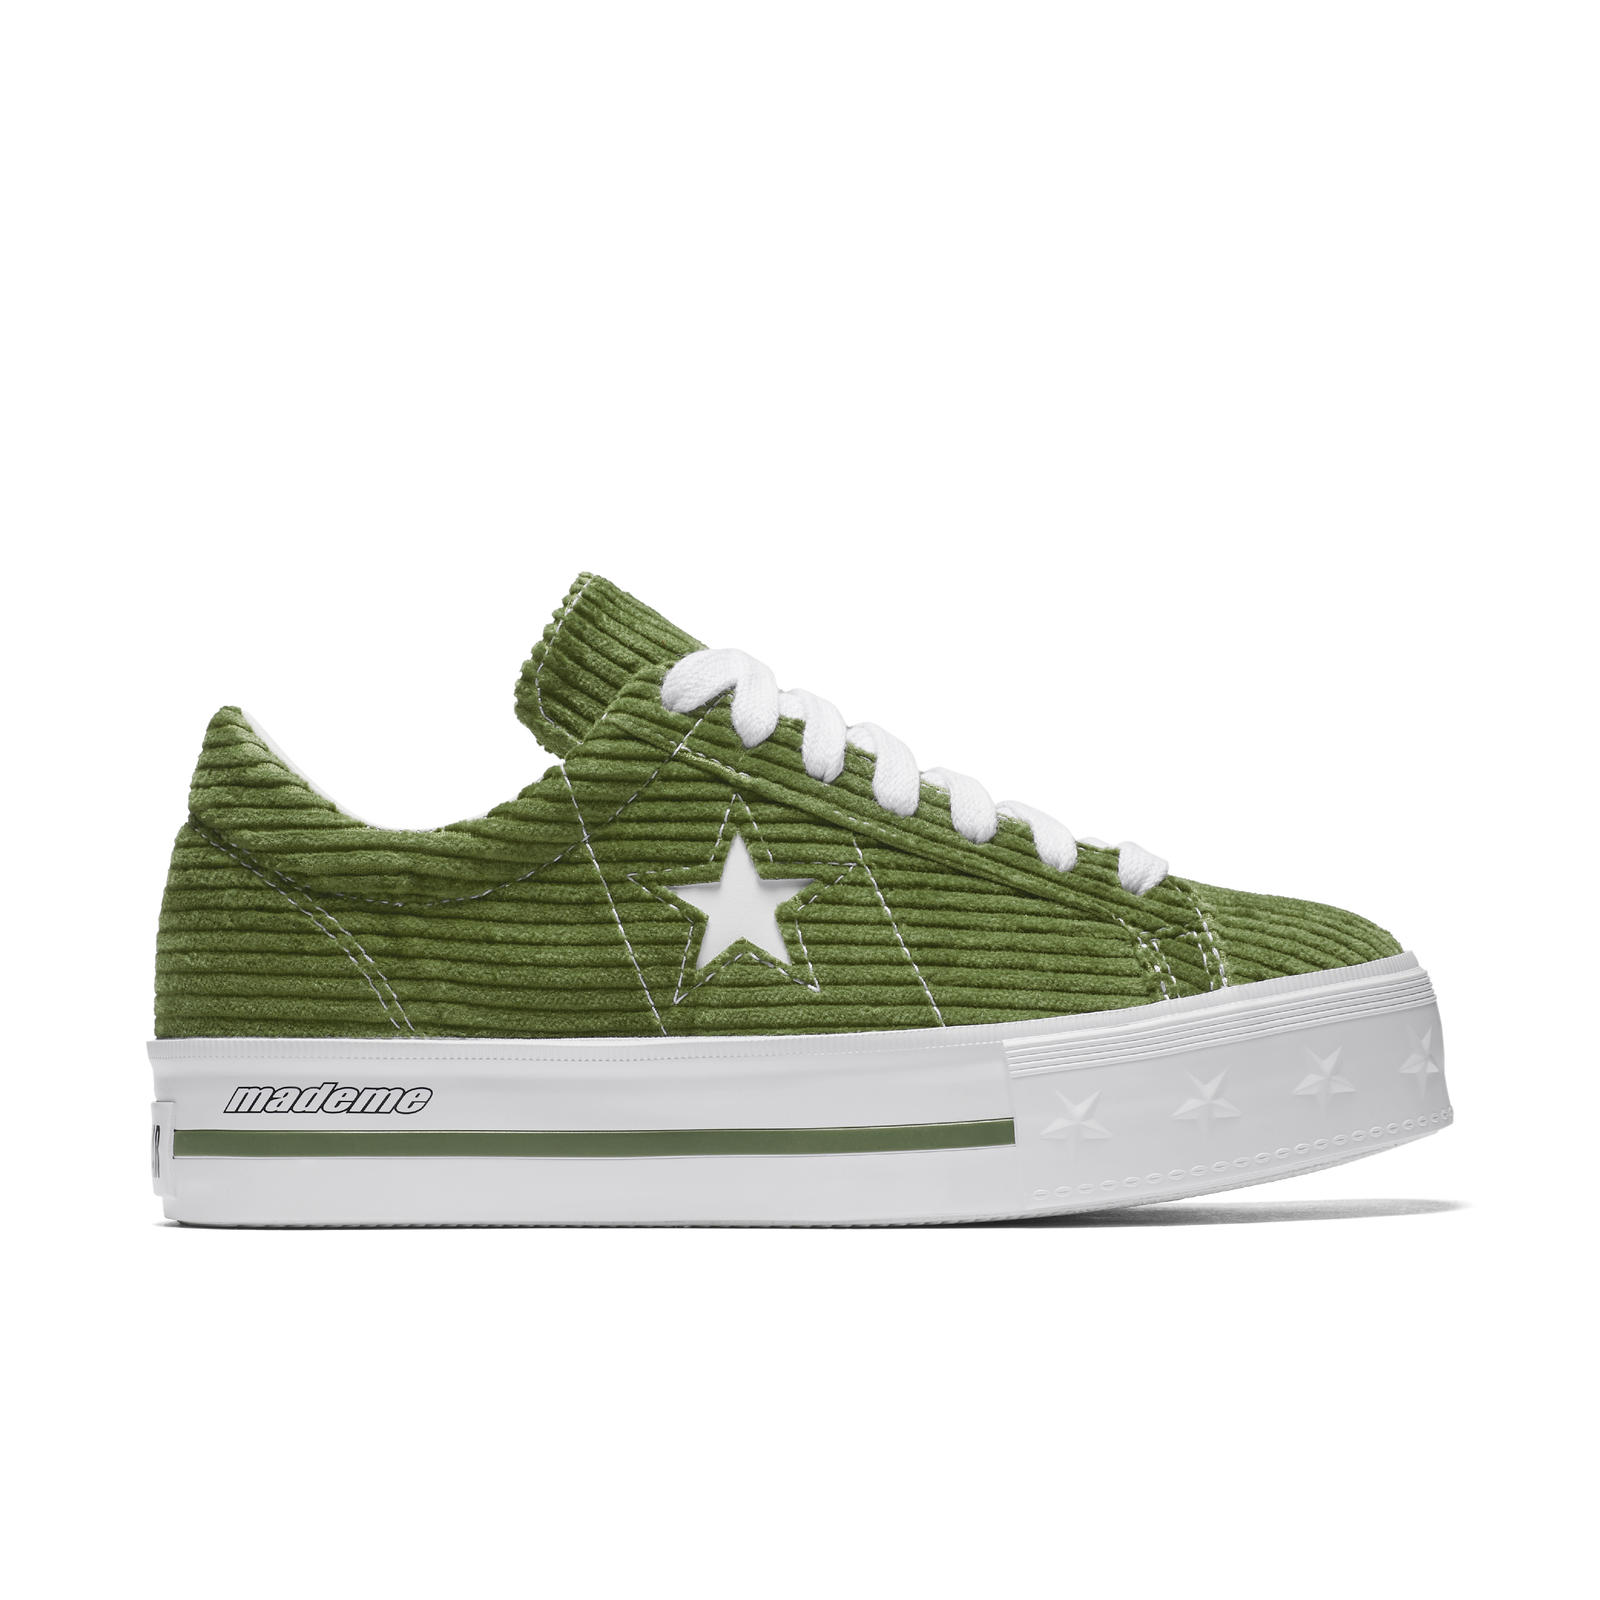 This New MadeMe x Converse Collection